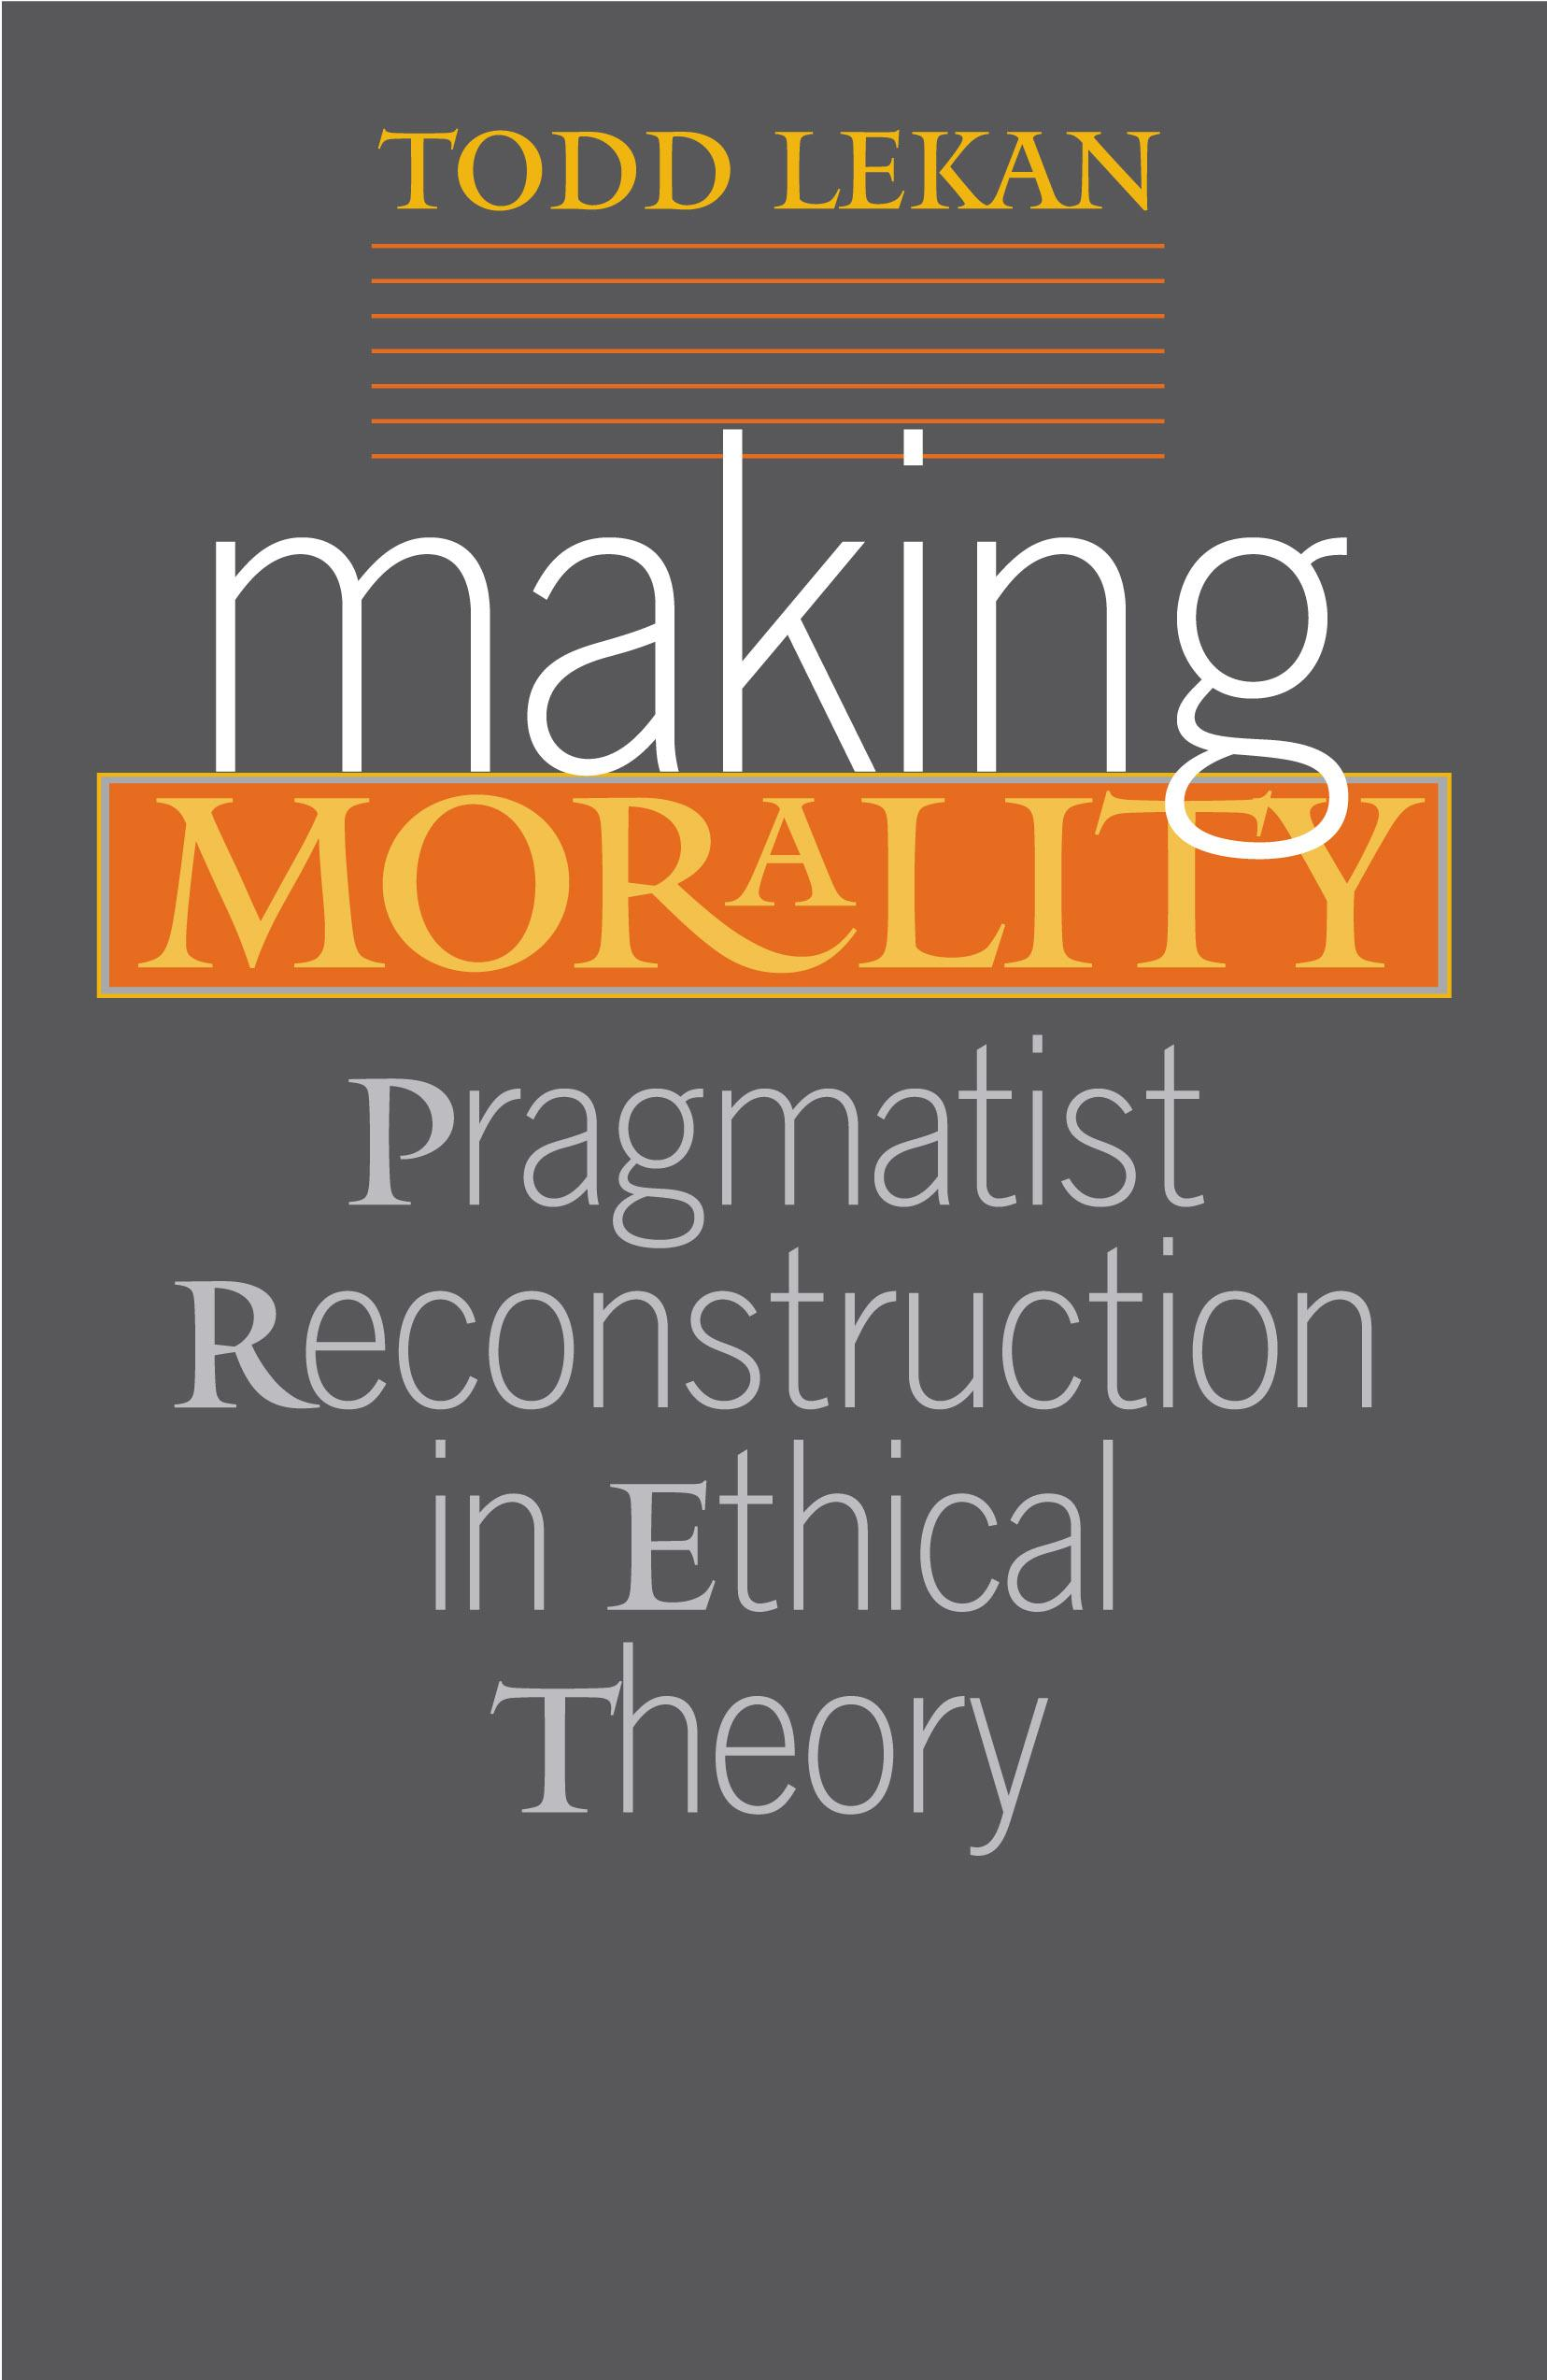 Making Morality: Pragmatist Reconstruction in Ethical Theory EB9780826591654